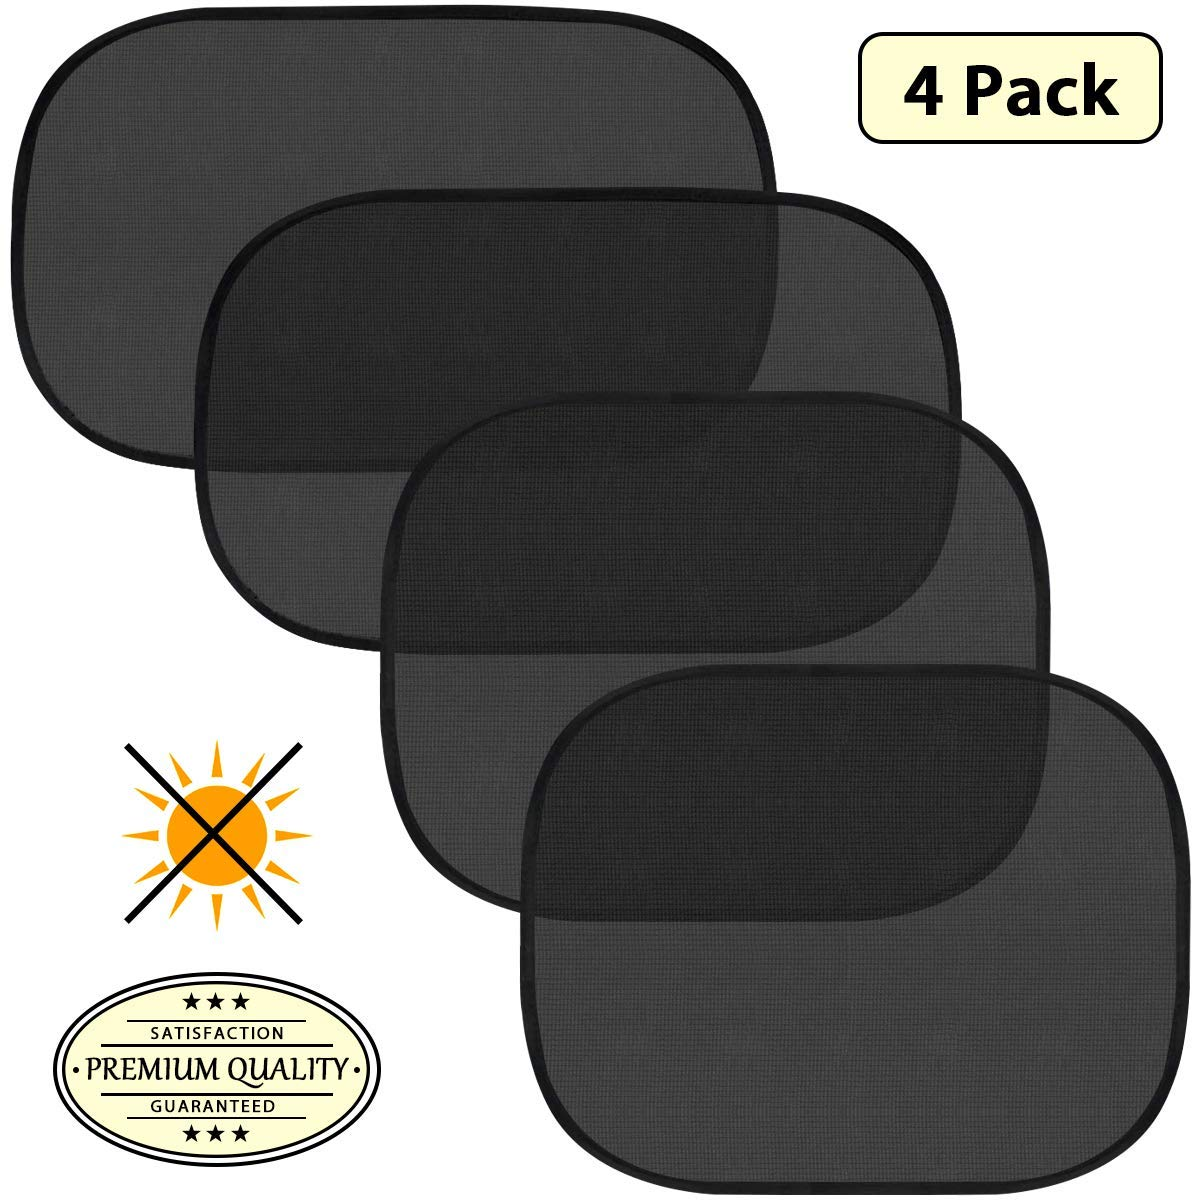 Car Sun Shade, Pudolla 4PCS Car Side Rear Window Cling Sunshades- 80 GMS 15s Film for UV Protection, Protect Child Infant Baby by Pudolla